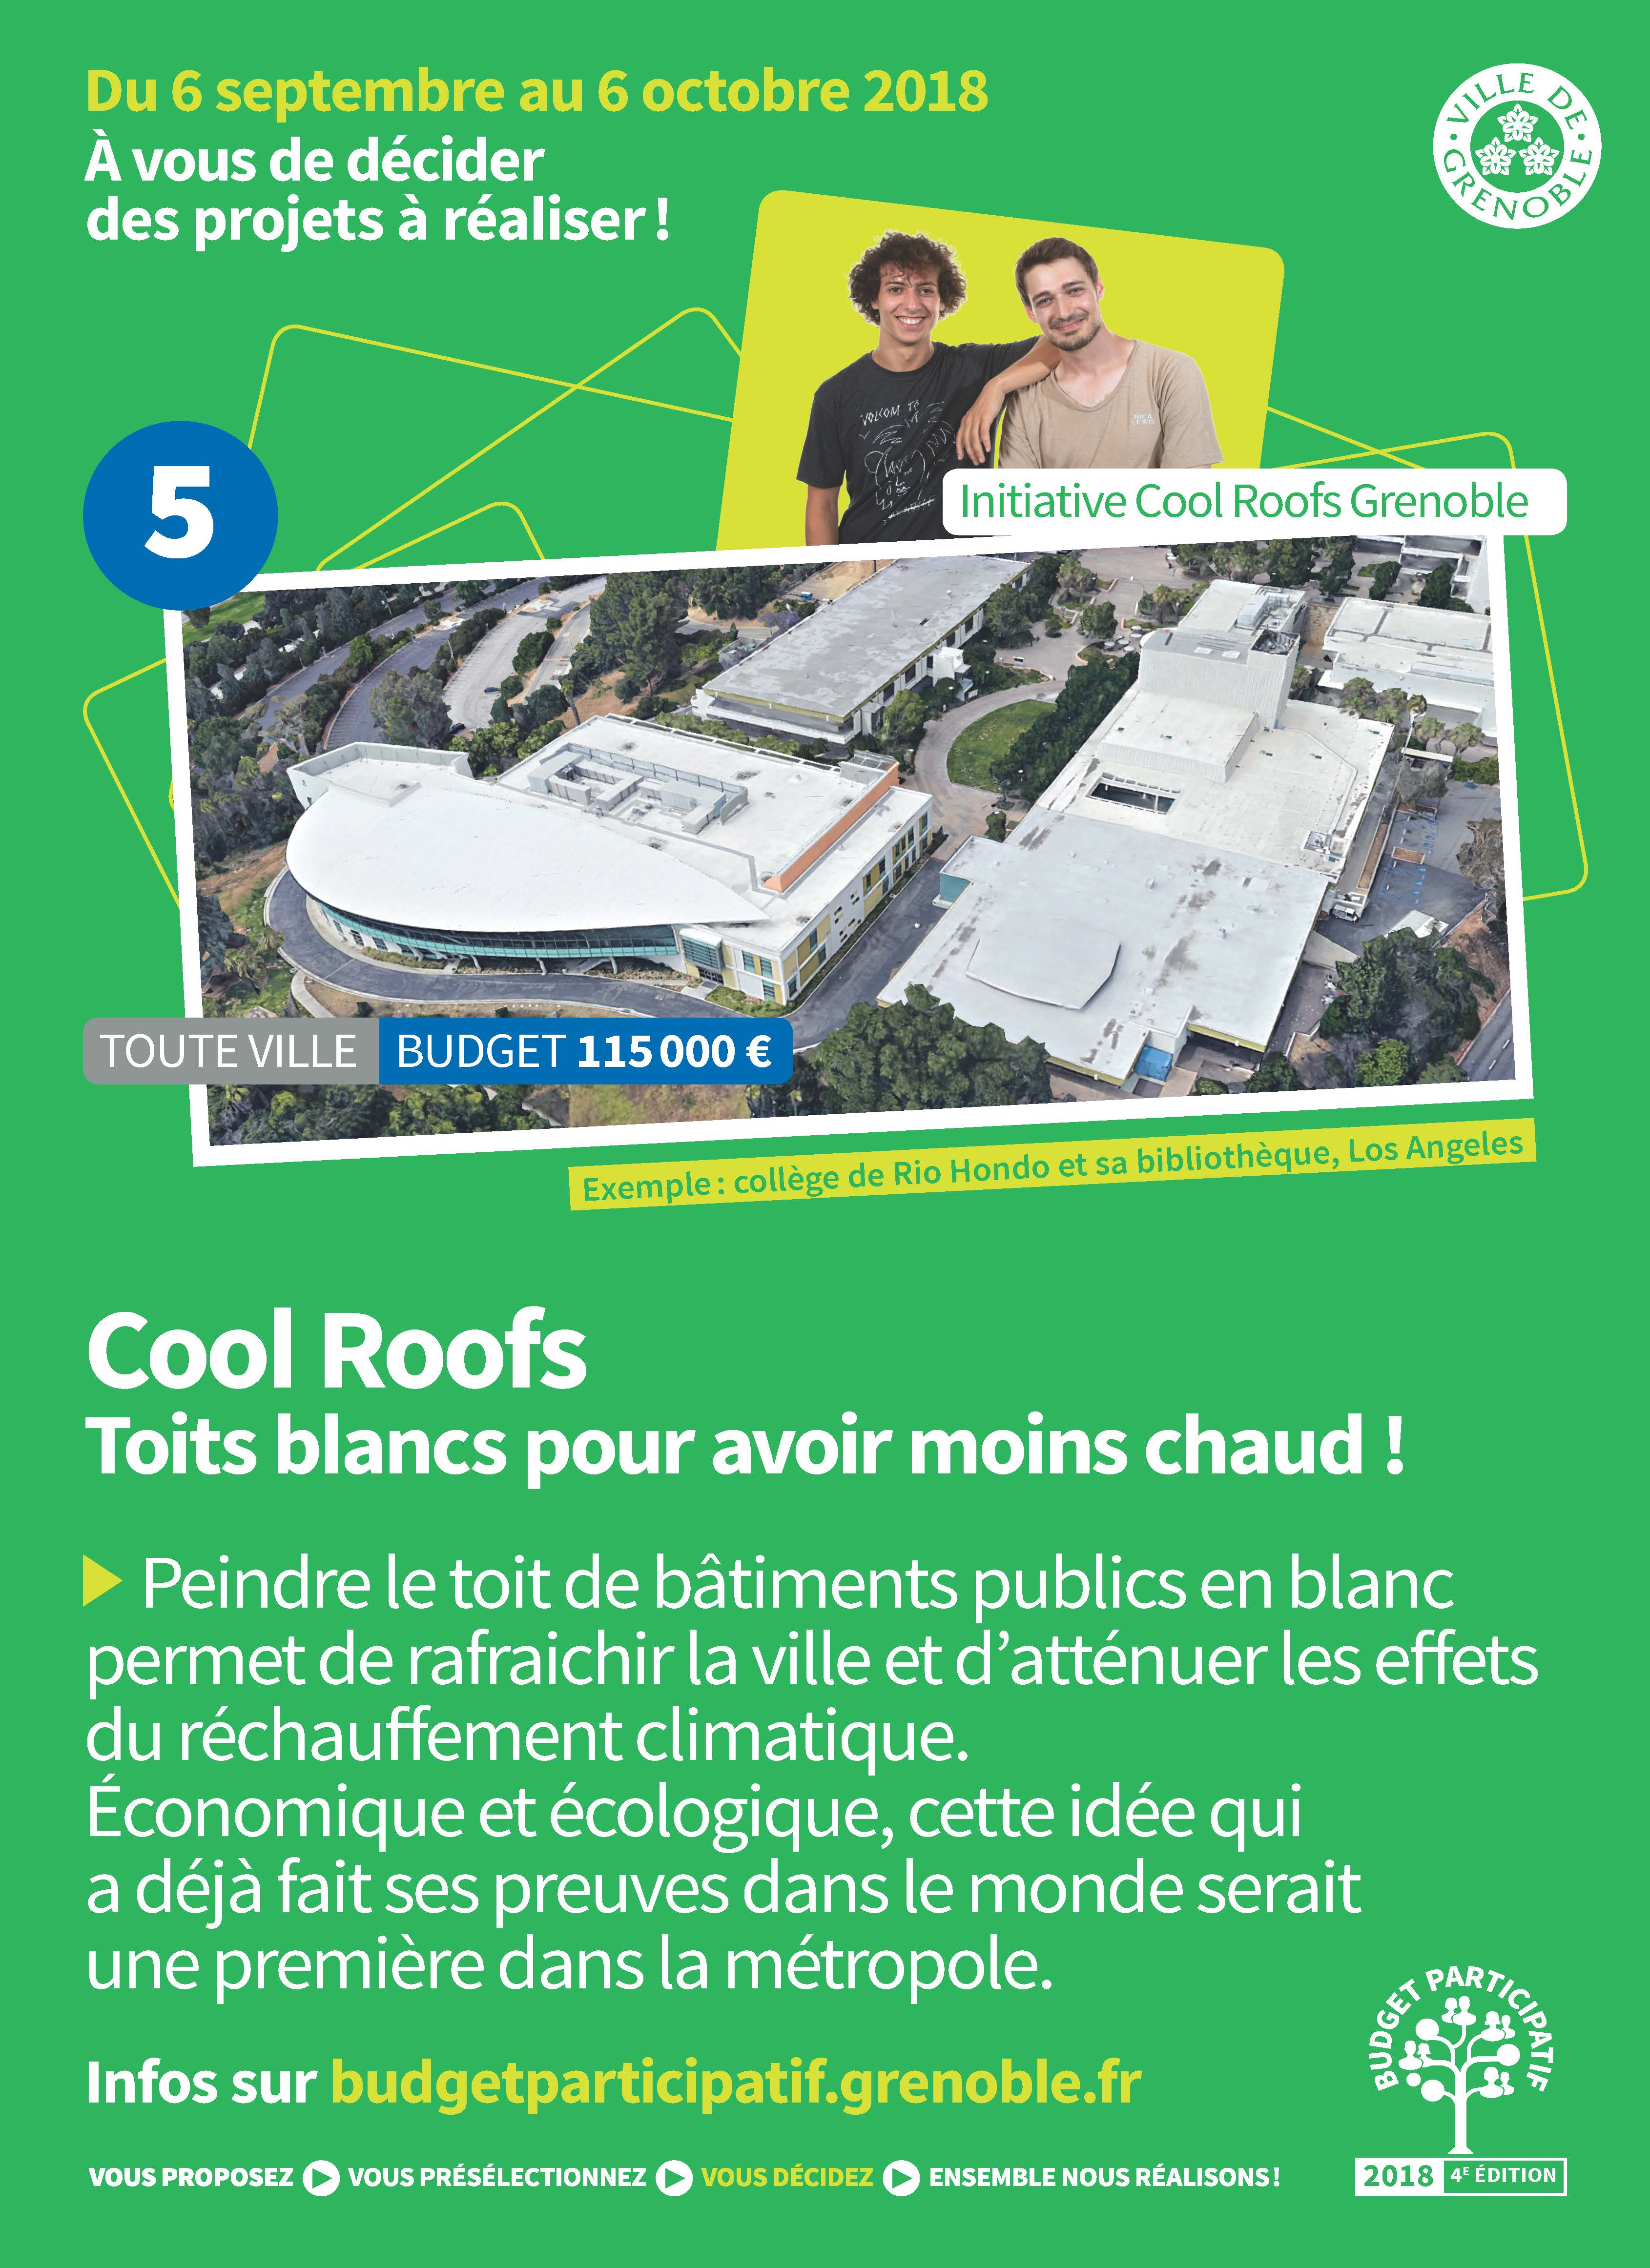 Projet Cool roofs